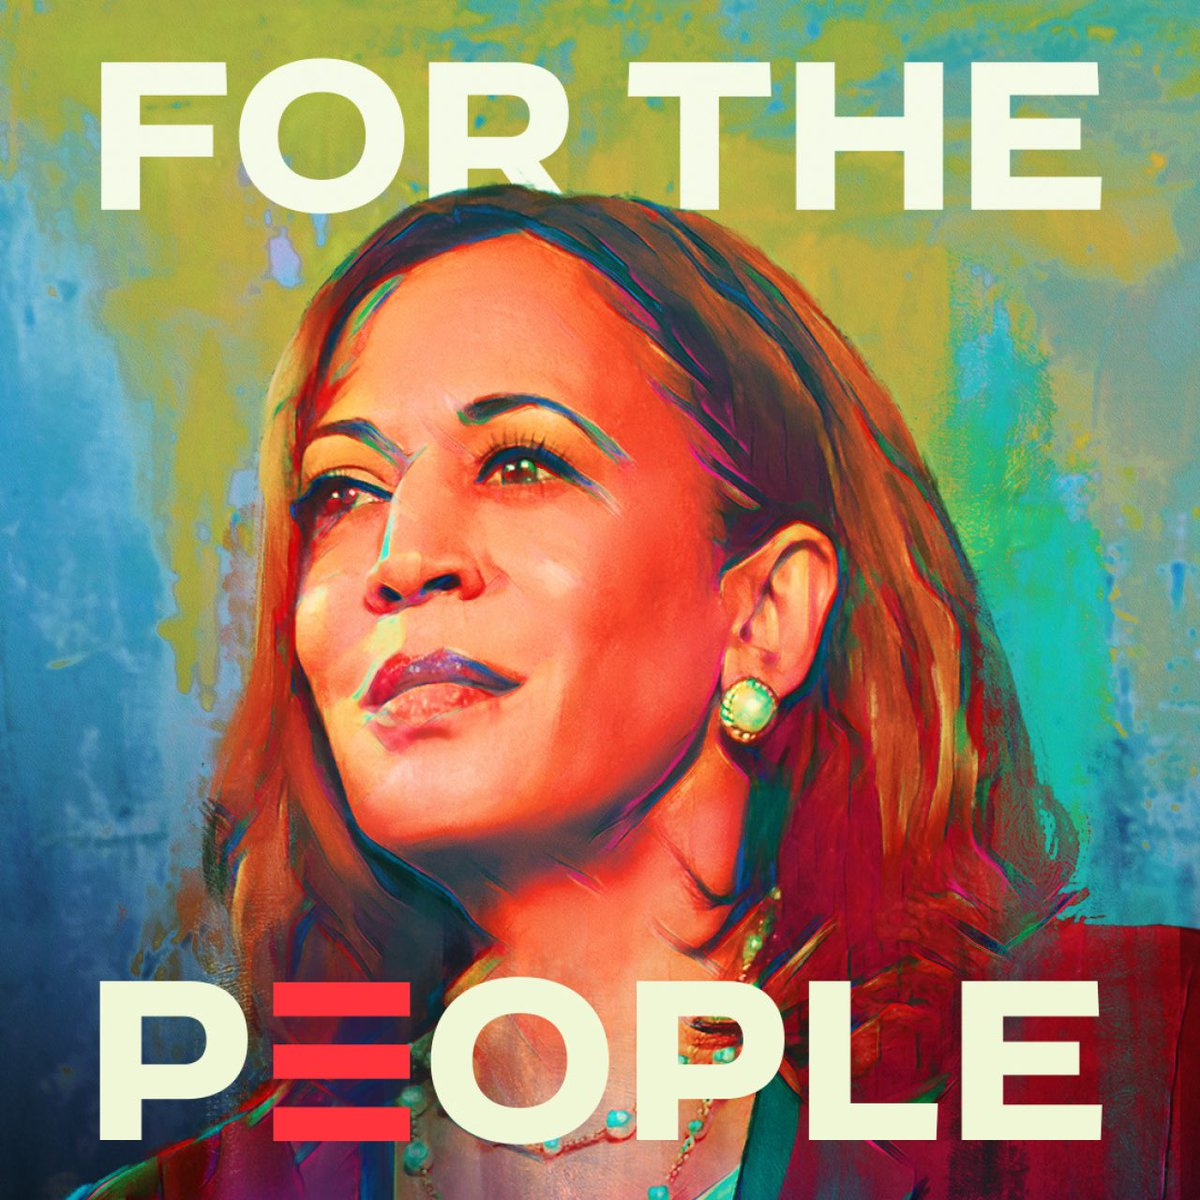 .@KamalaHarris is a fighter. She will fight for the American people! After tonight, I'm even more proud to stand with her, and proud to vote for #BidenHarris2020ToSaveAmerica   #KamalaWonTheDebate https://t.co/Cq3OYXqNLa